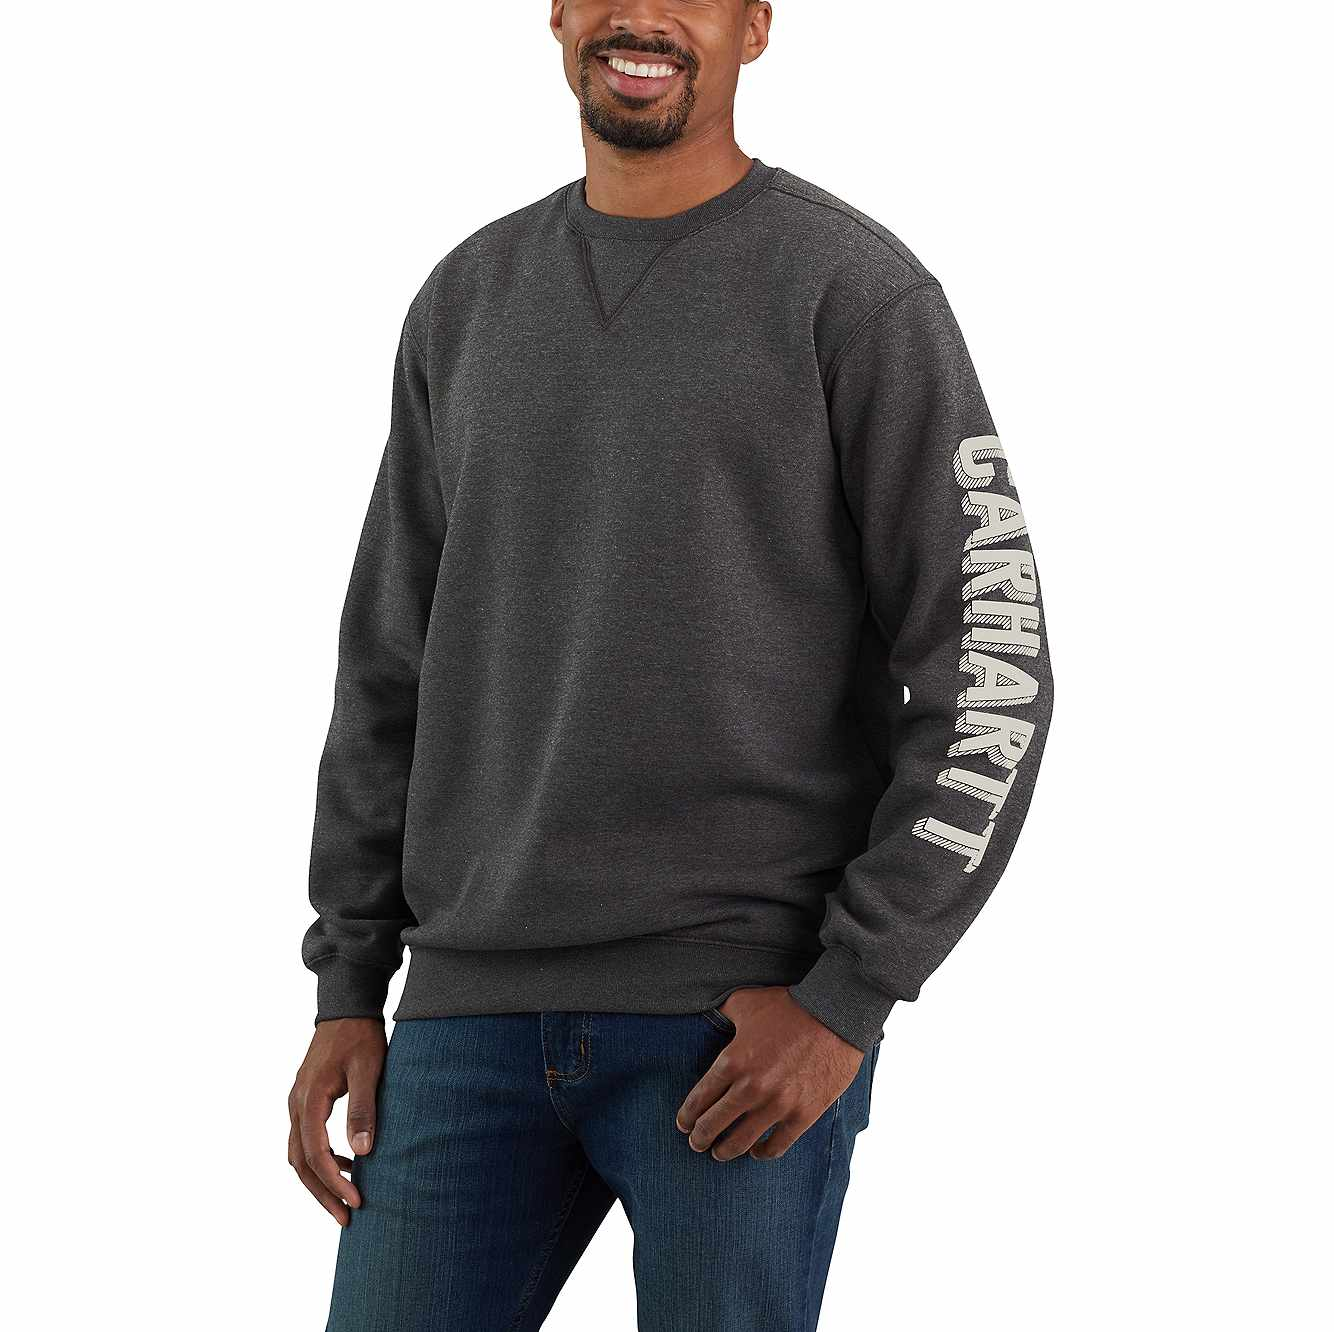 Picture of LOOSE FIT MIDWEIGHT CREWNECK SLEEVE GRAPHIC SWEATSHIRT